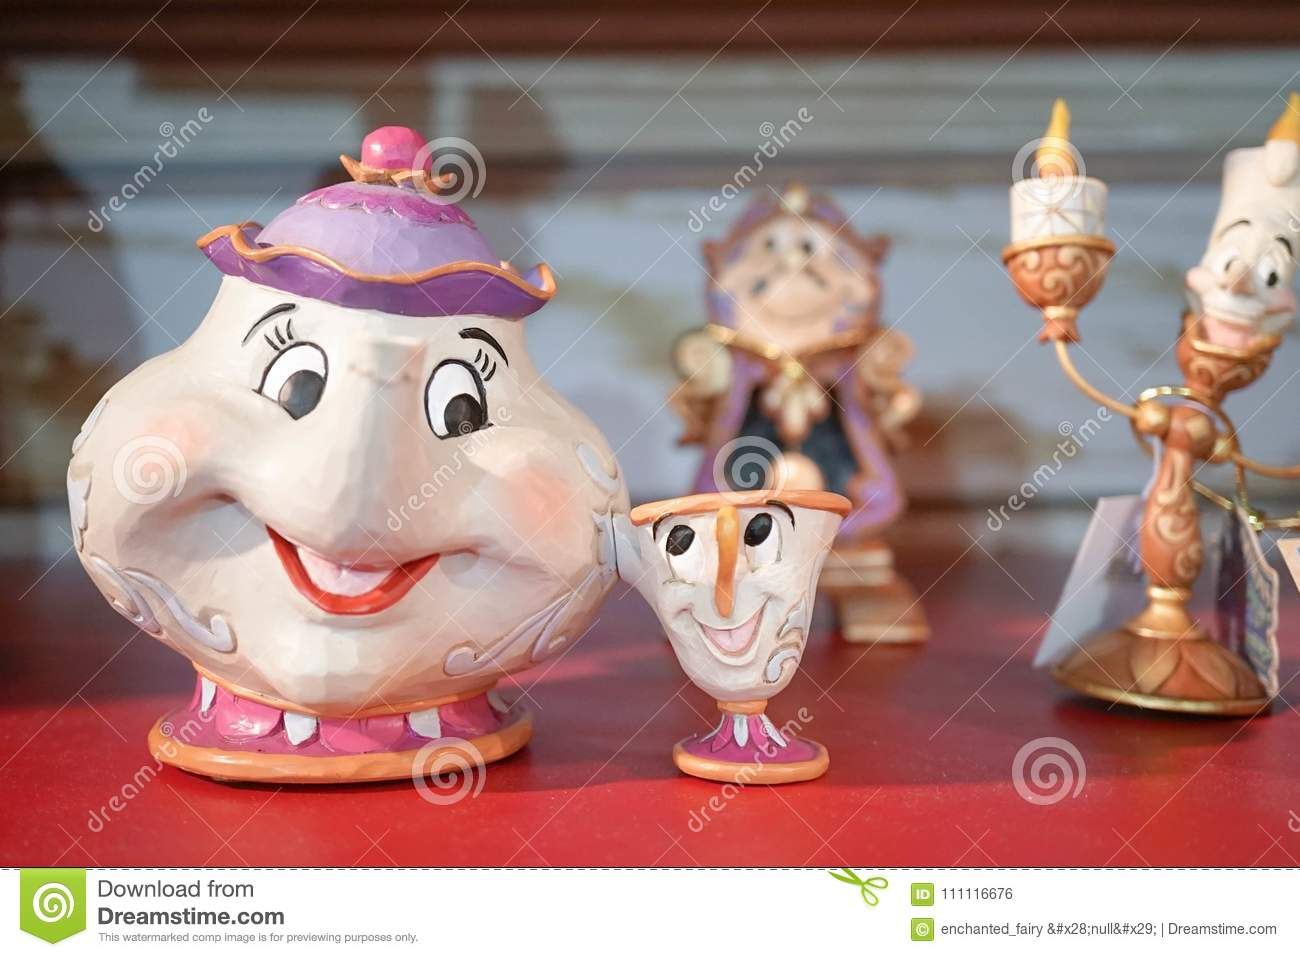 Disney Merchandise of Mrs. Potts & chips are on Display along with other supporting characters